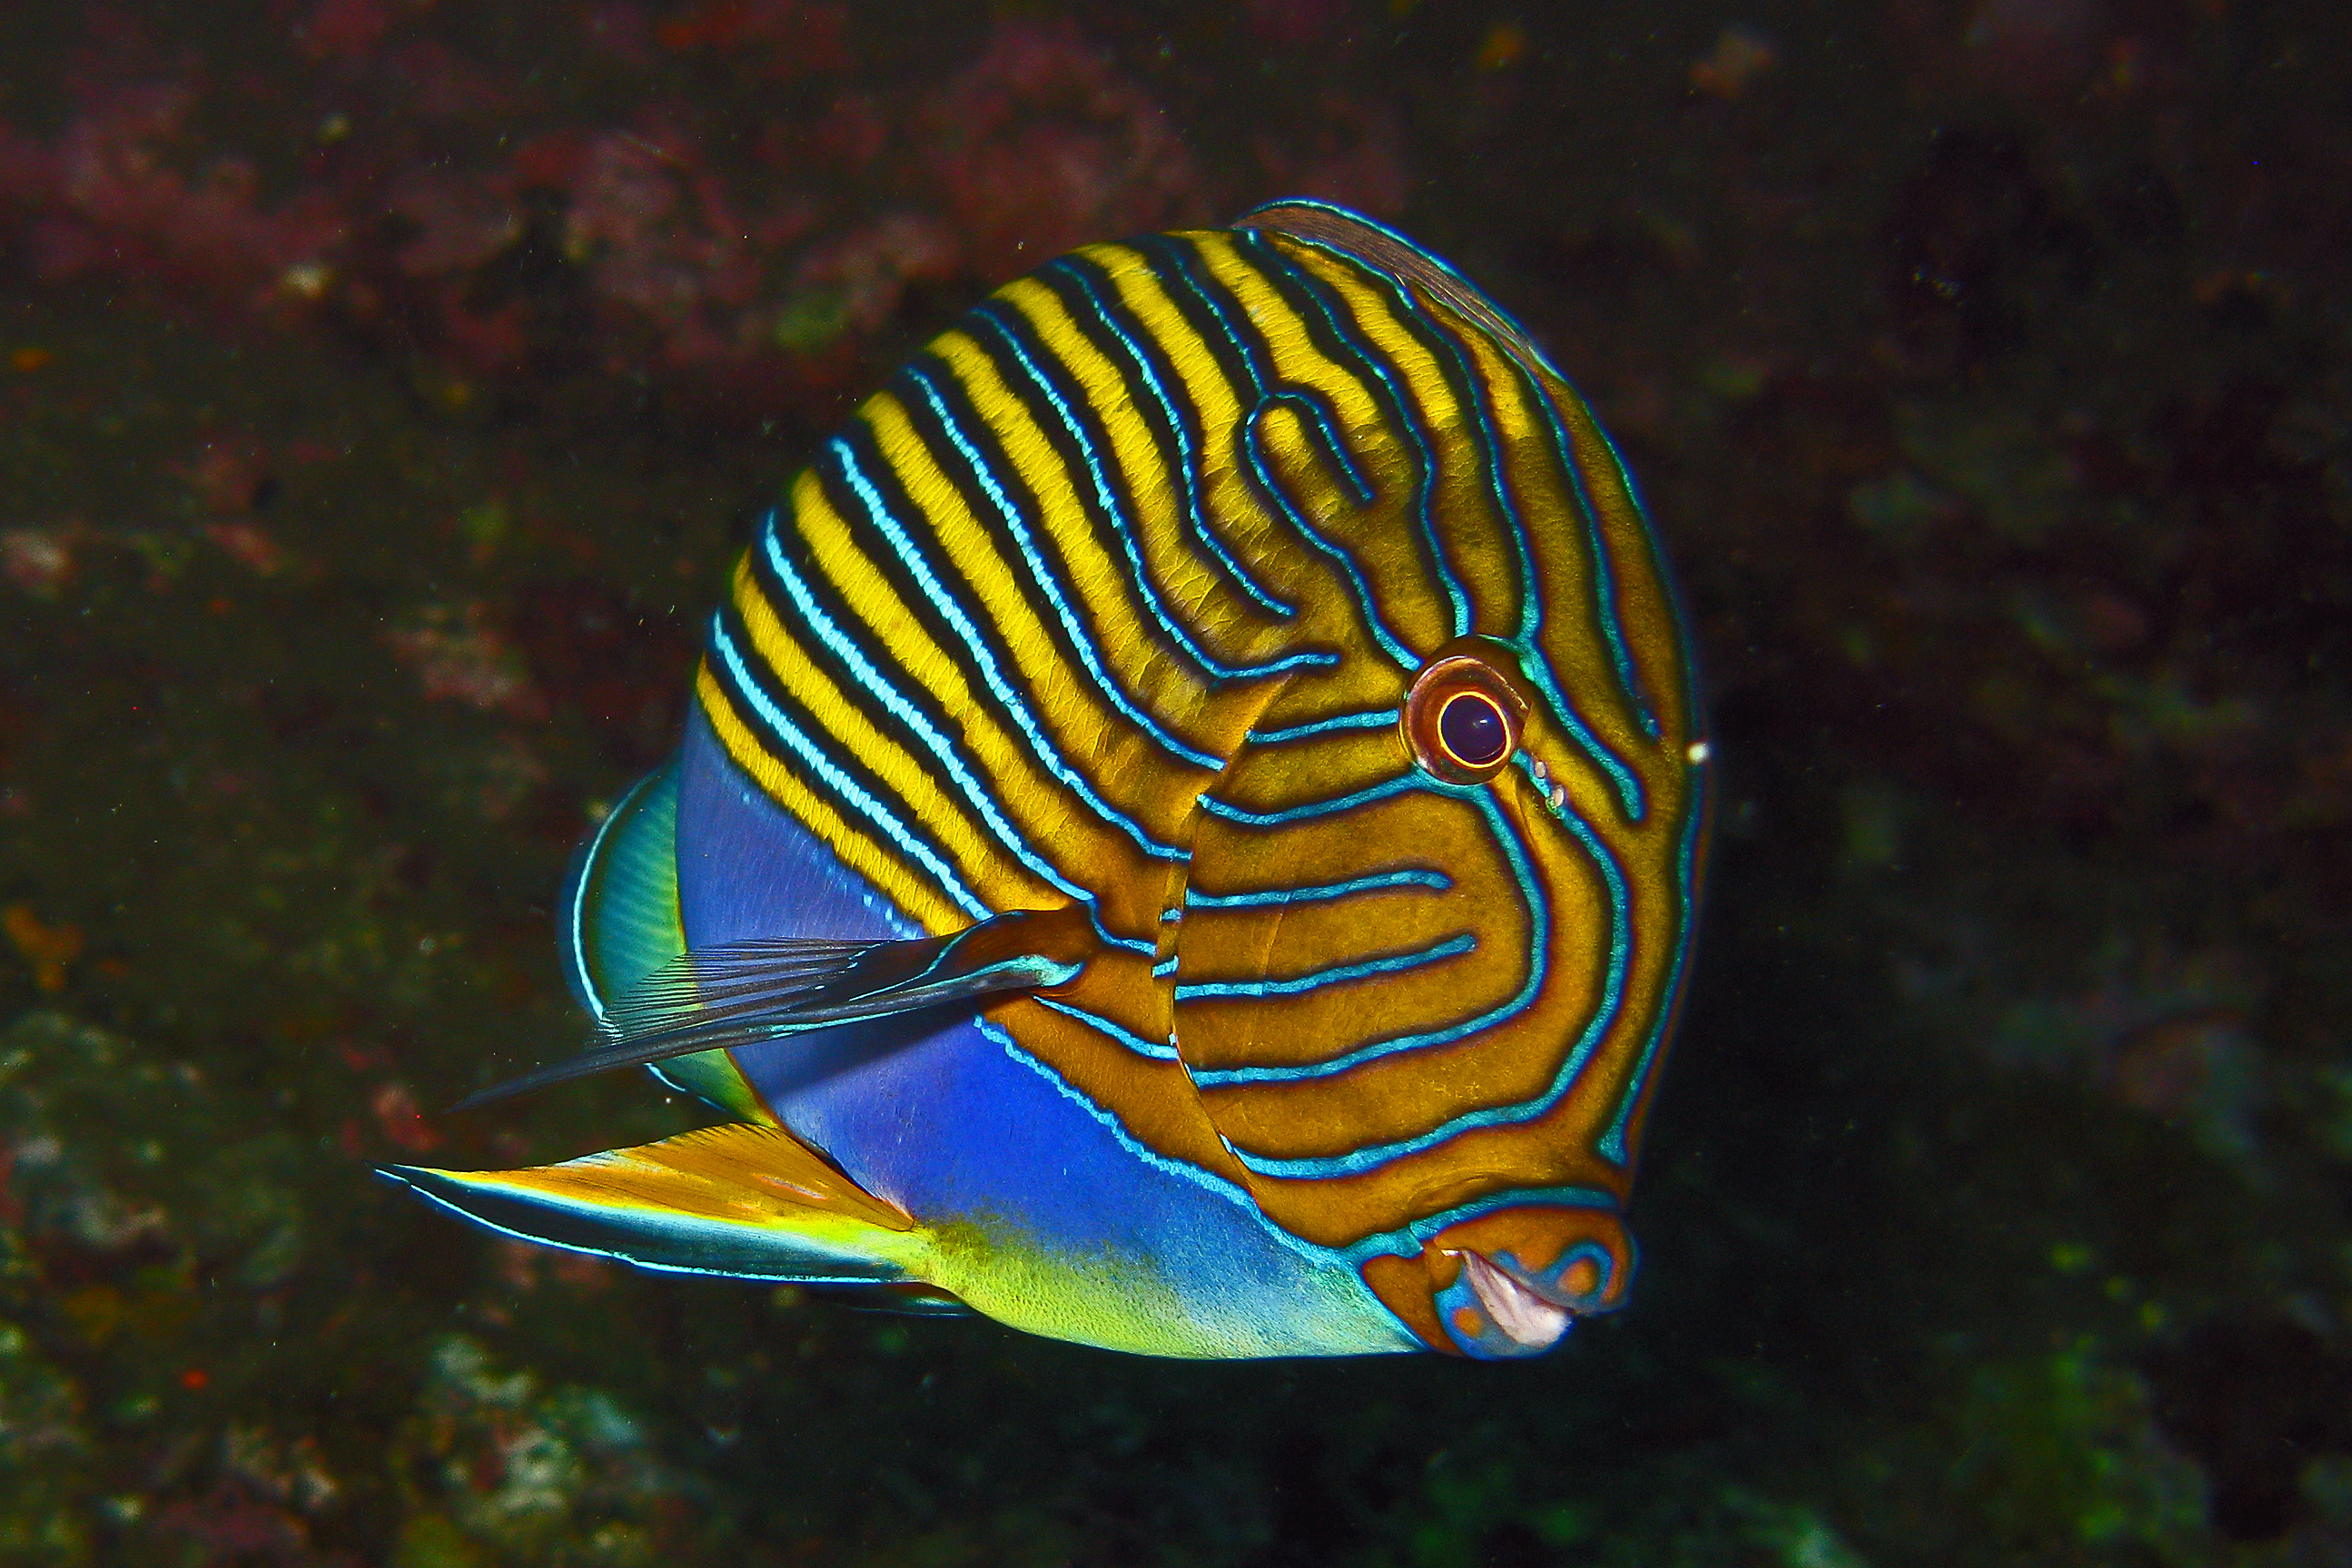 https://upload.wikimedia.org/wikipedia/commons/a/a0/Blue_lined_Surgeonfish_-_Acanthurus_lineatus.jpg